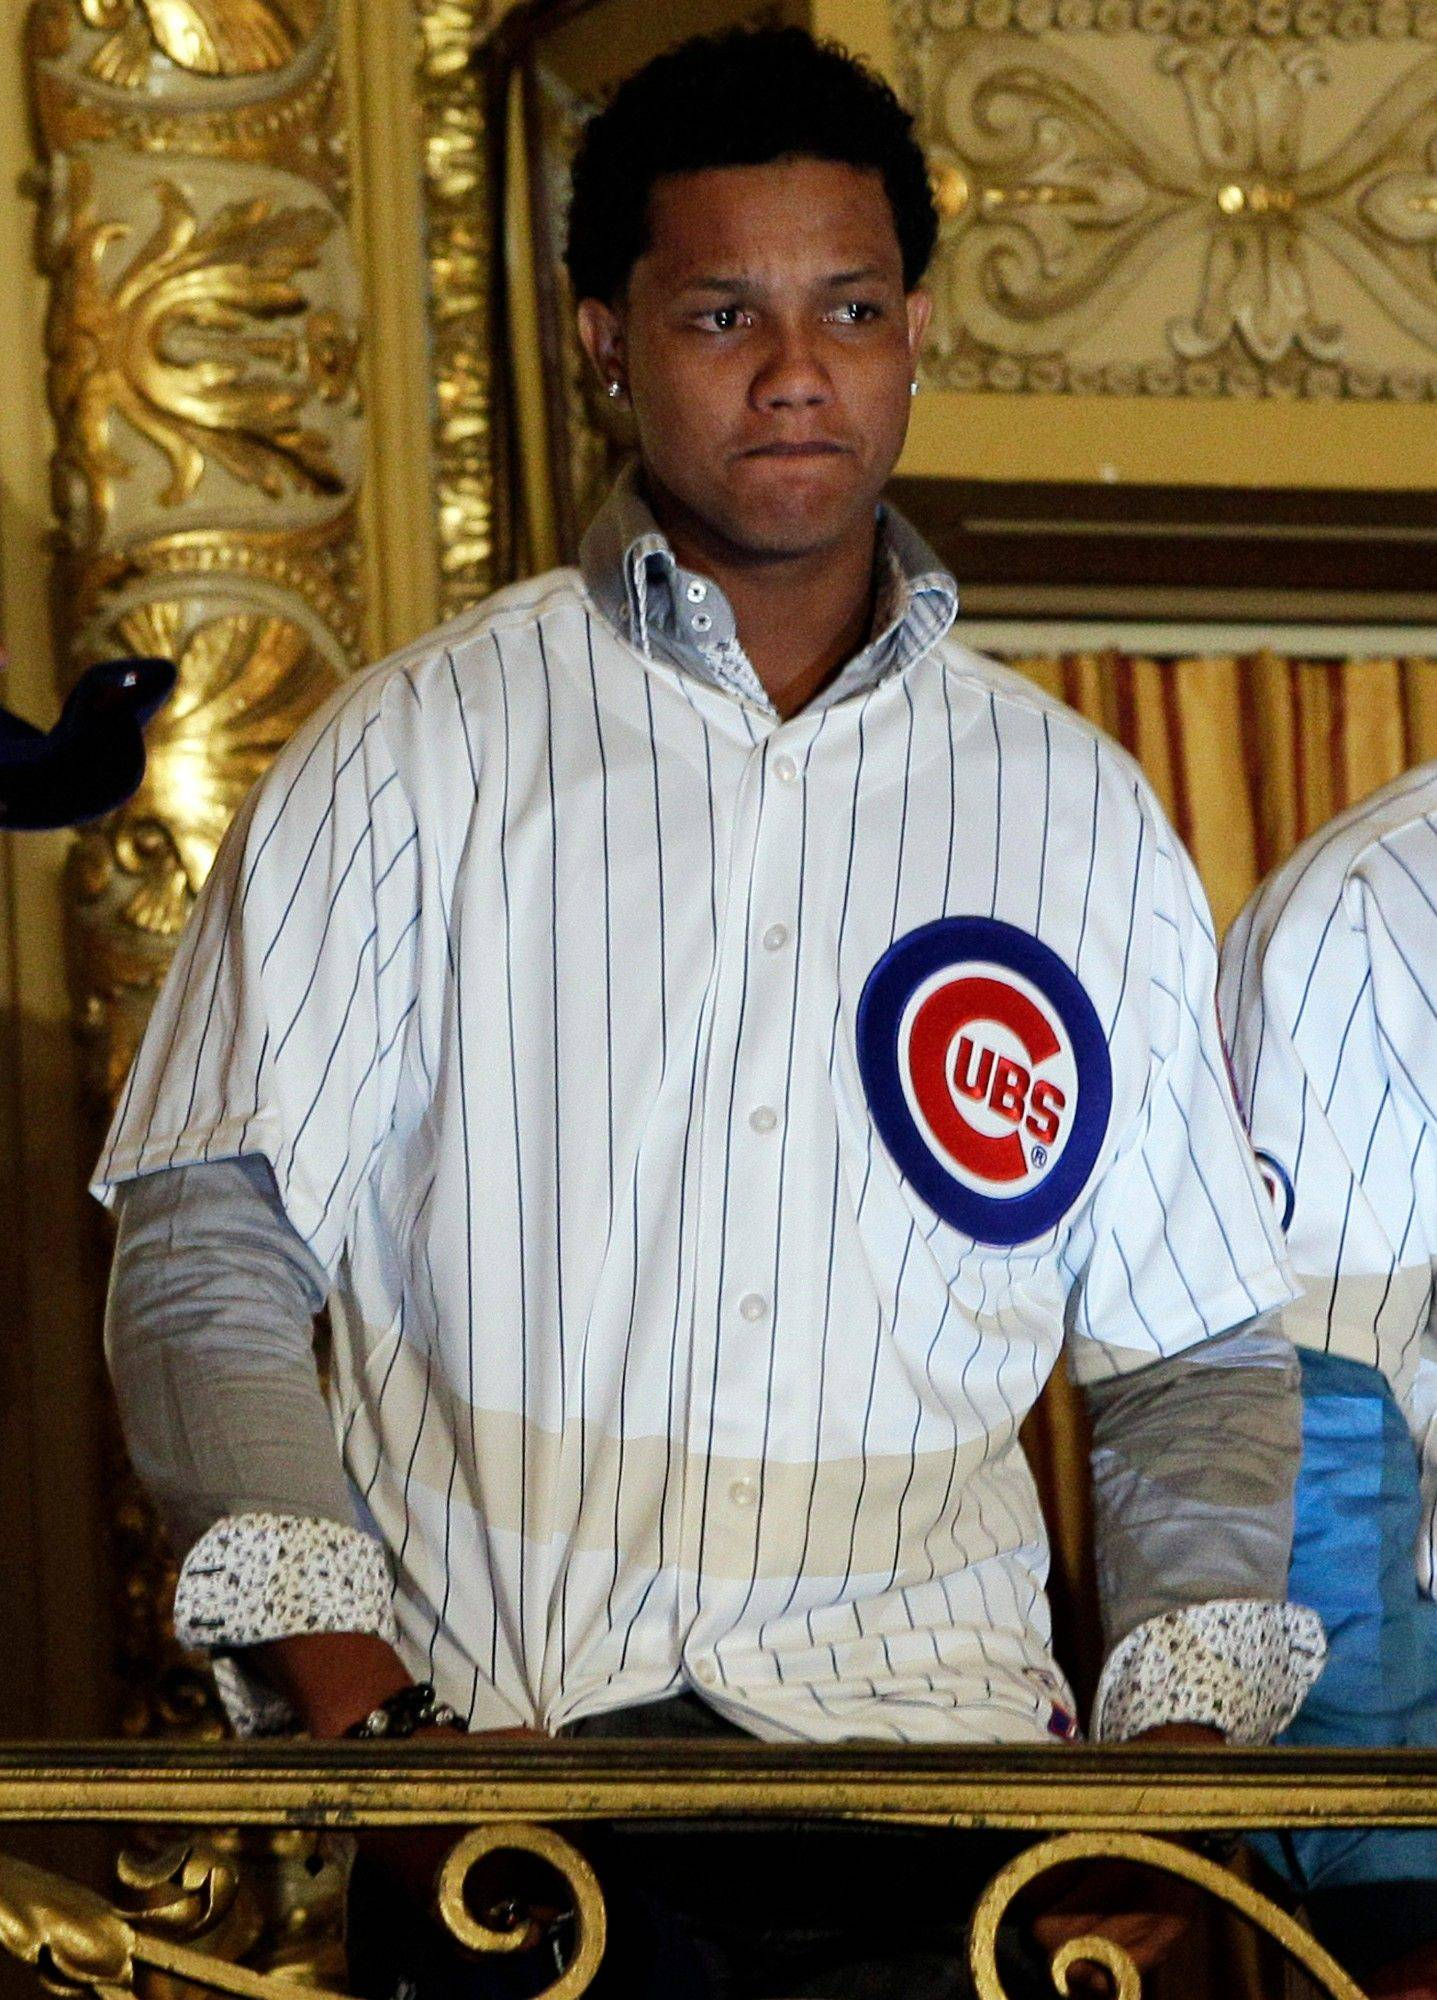 Chicago Cubs infielder Starlin Castro attends the 27th Annual Chicago Cubs Convention in Chicago on Friday, Jan. 13, 2012. Castro, whose attorneys last week denied any wrongdoing after a report that a woman had�accused him of sexual assault, said Friday that he has cooperated with police.